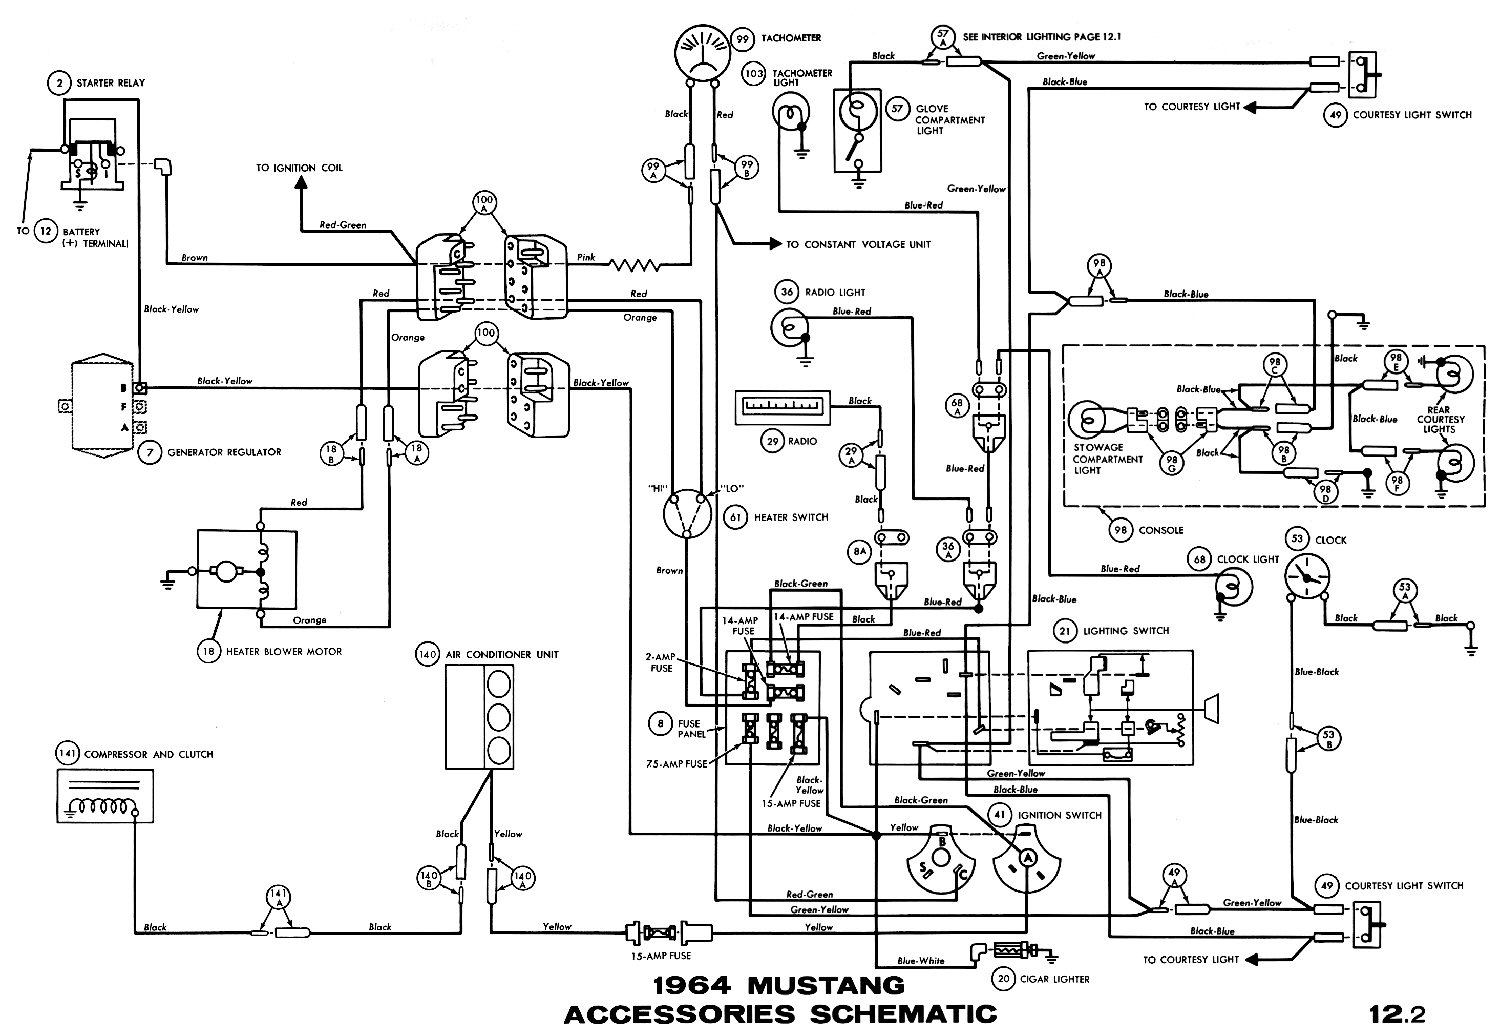 1964m 1964 mustang wiring diagrams average joe restoration 65 mustang engine wiring diagram at soozxer.org